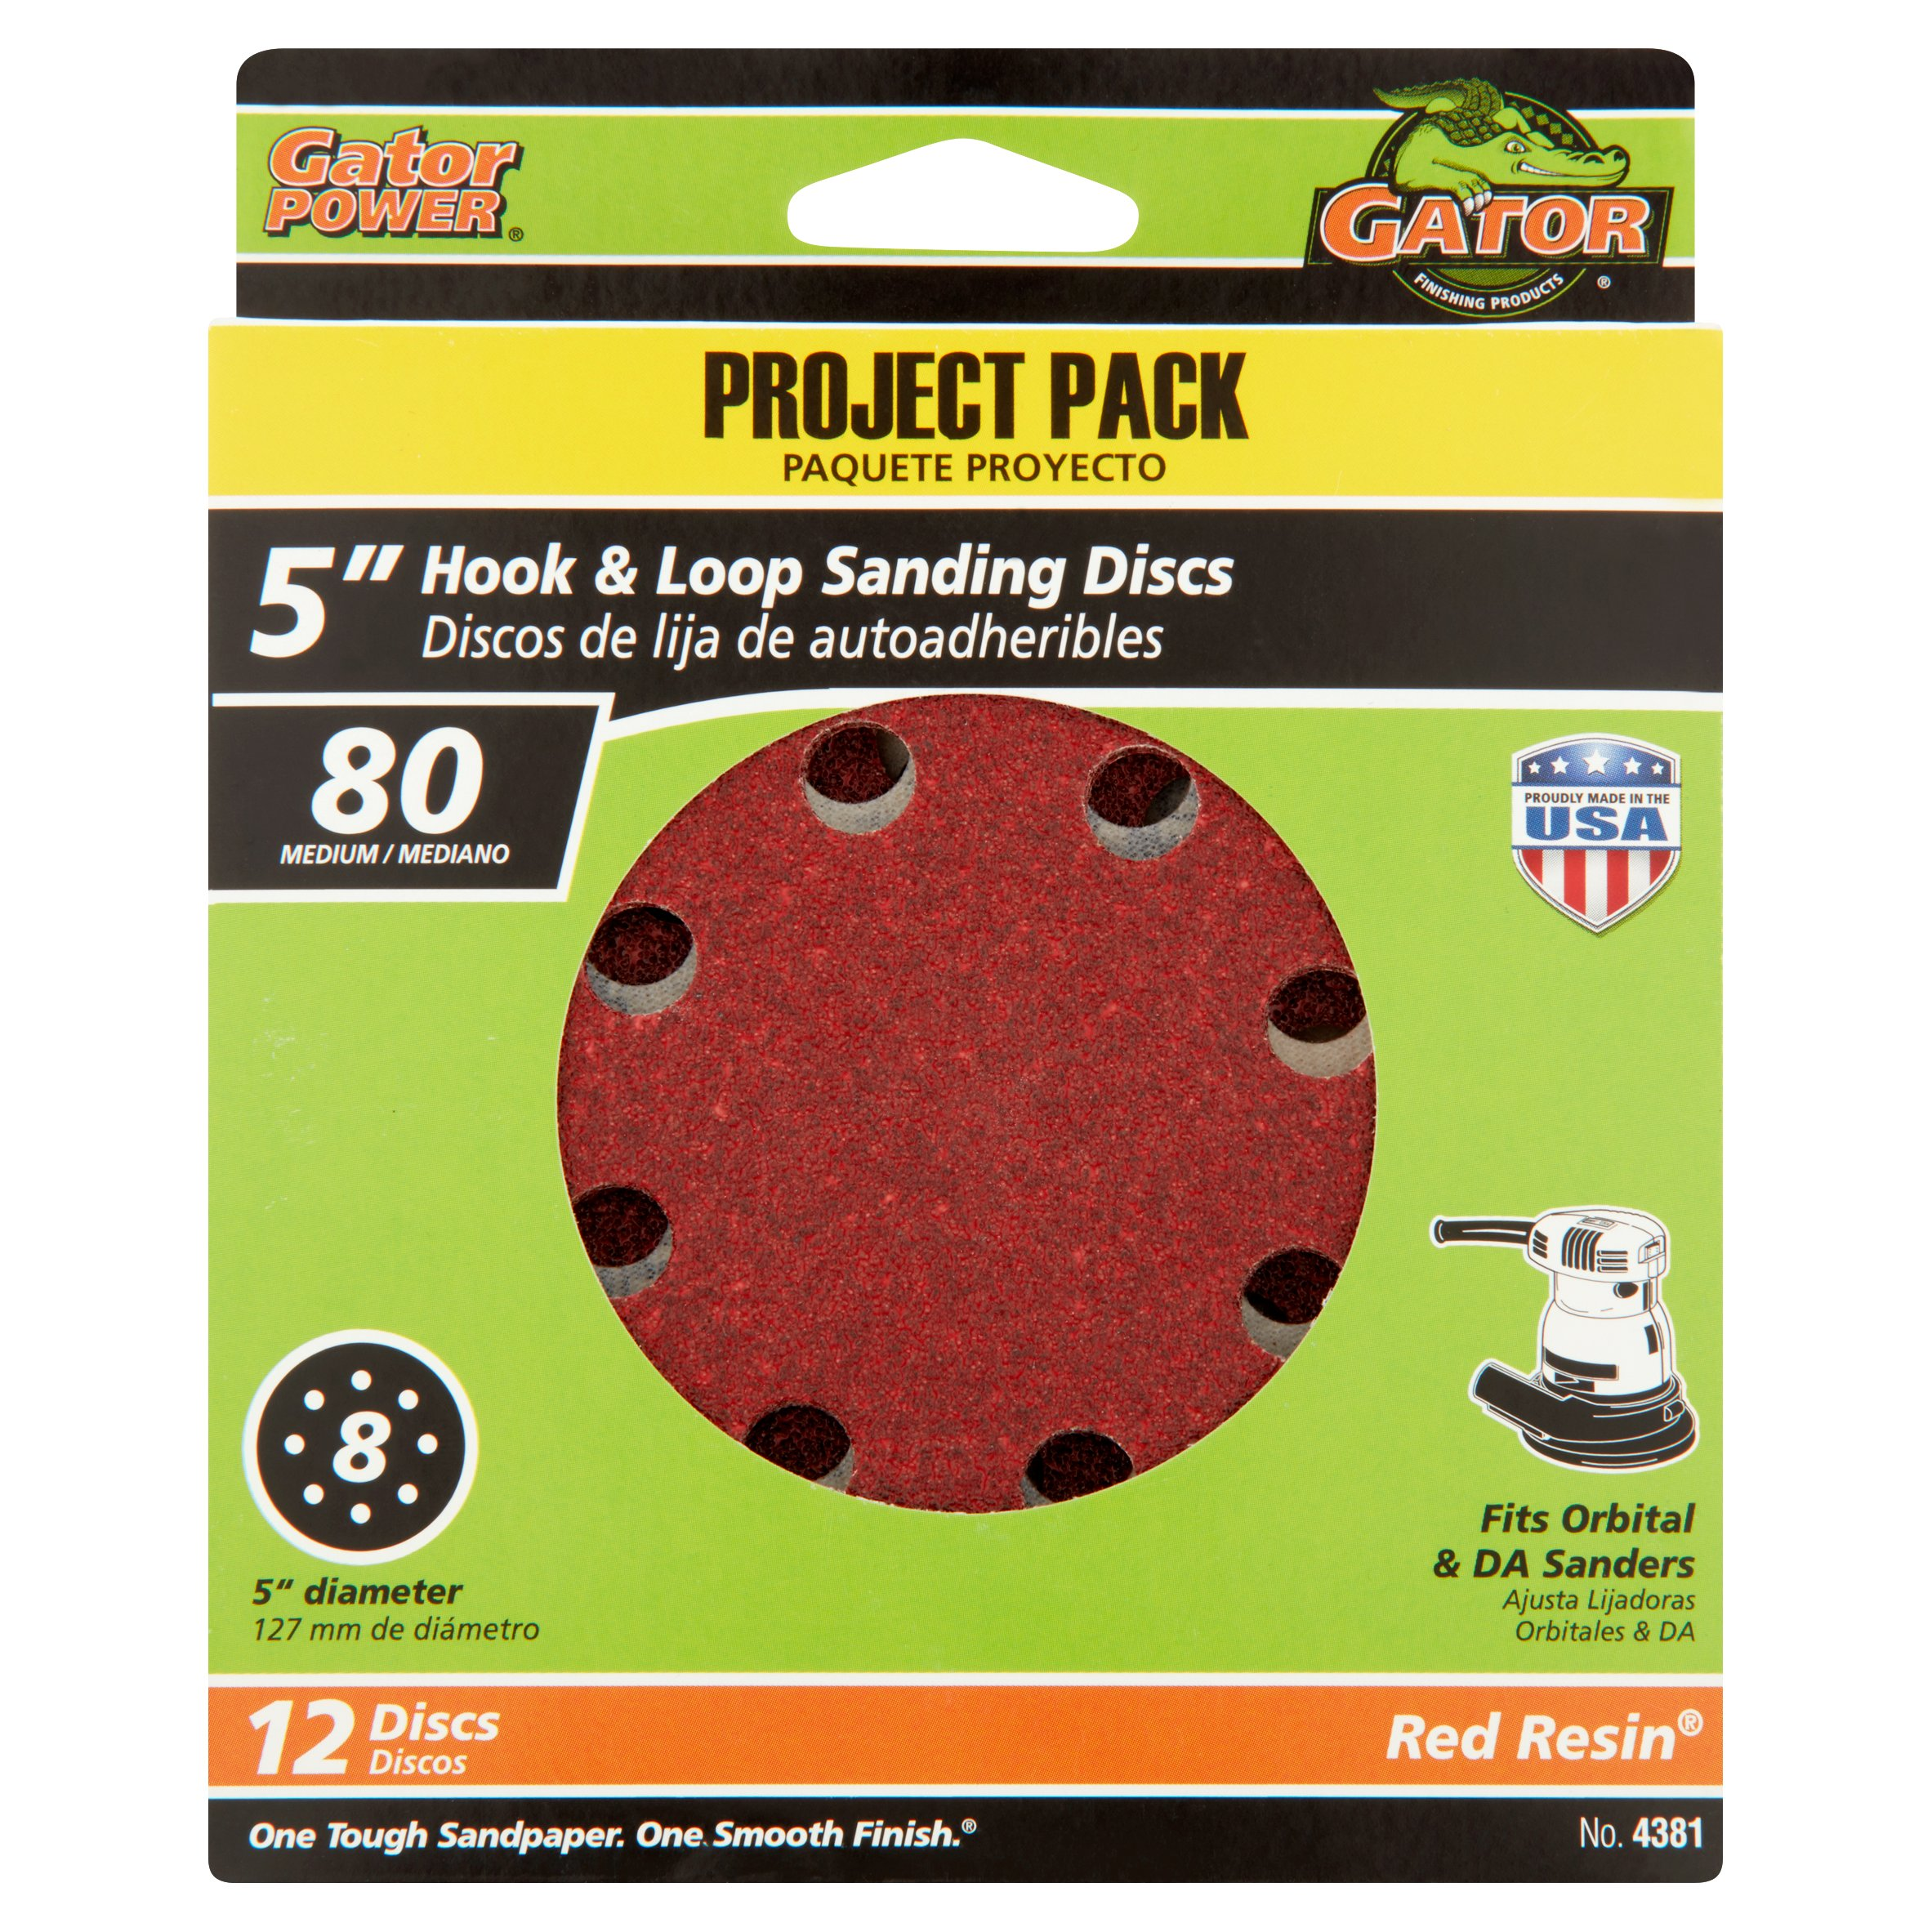 Gator Grit 5-Inch 8-Hole Hook And Loop Sanding Discs, 80 Grit, 12-Pack